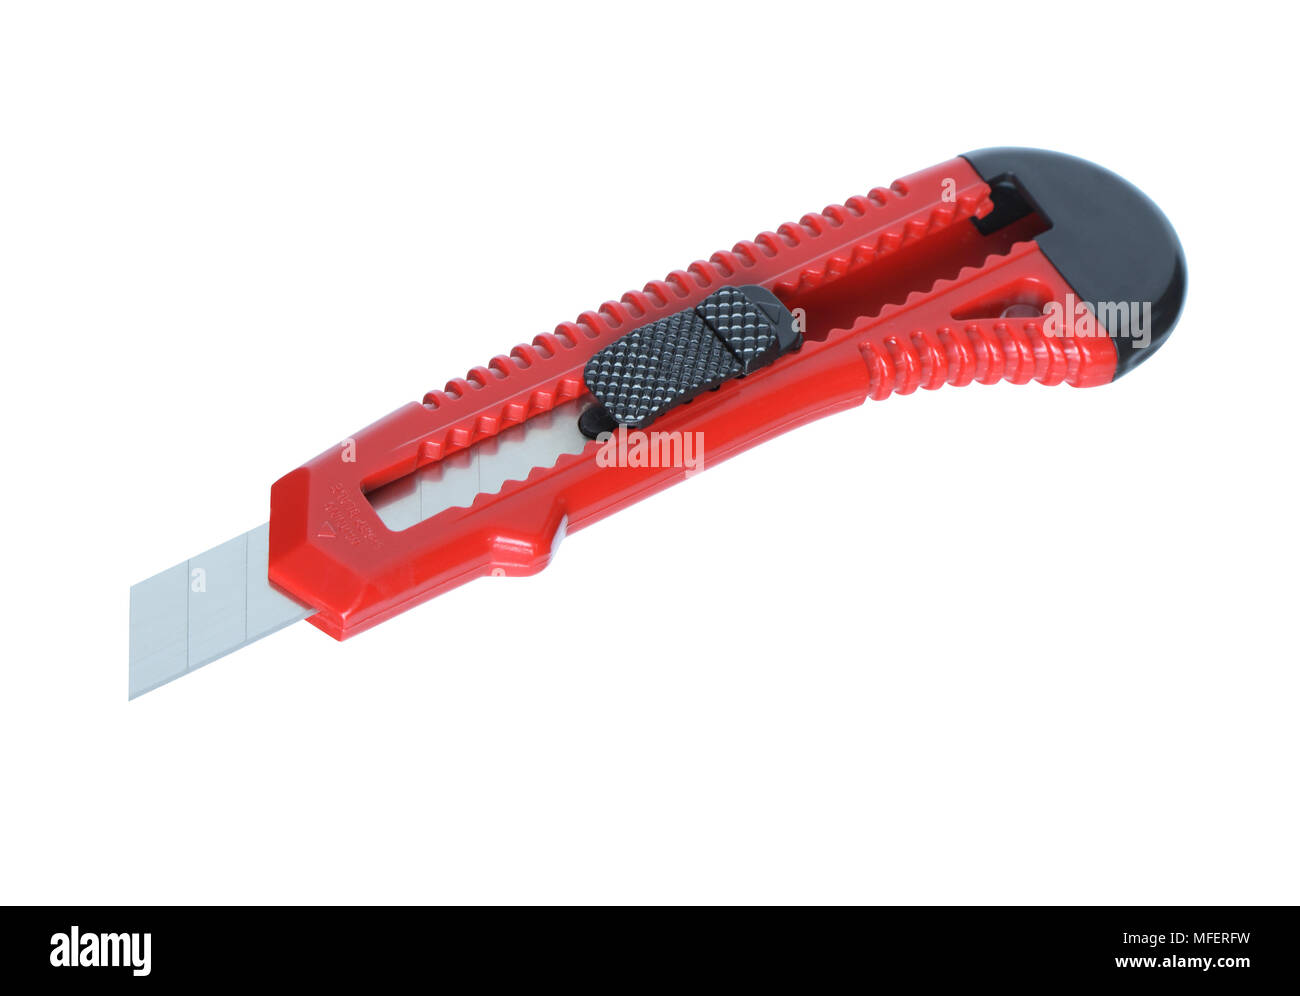 Modern red paper knife isolated on white background with clipping path - Stock Image